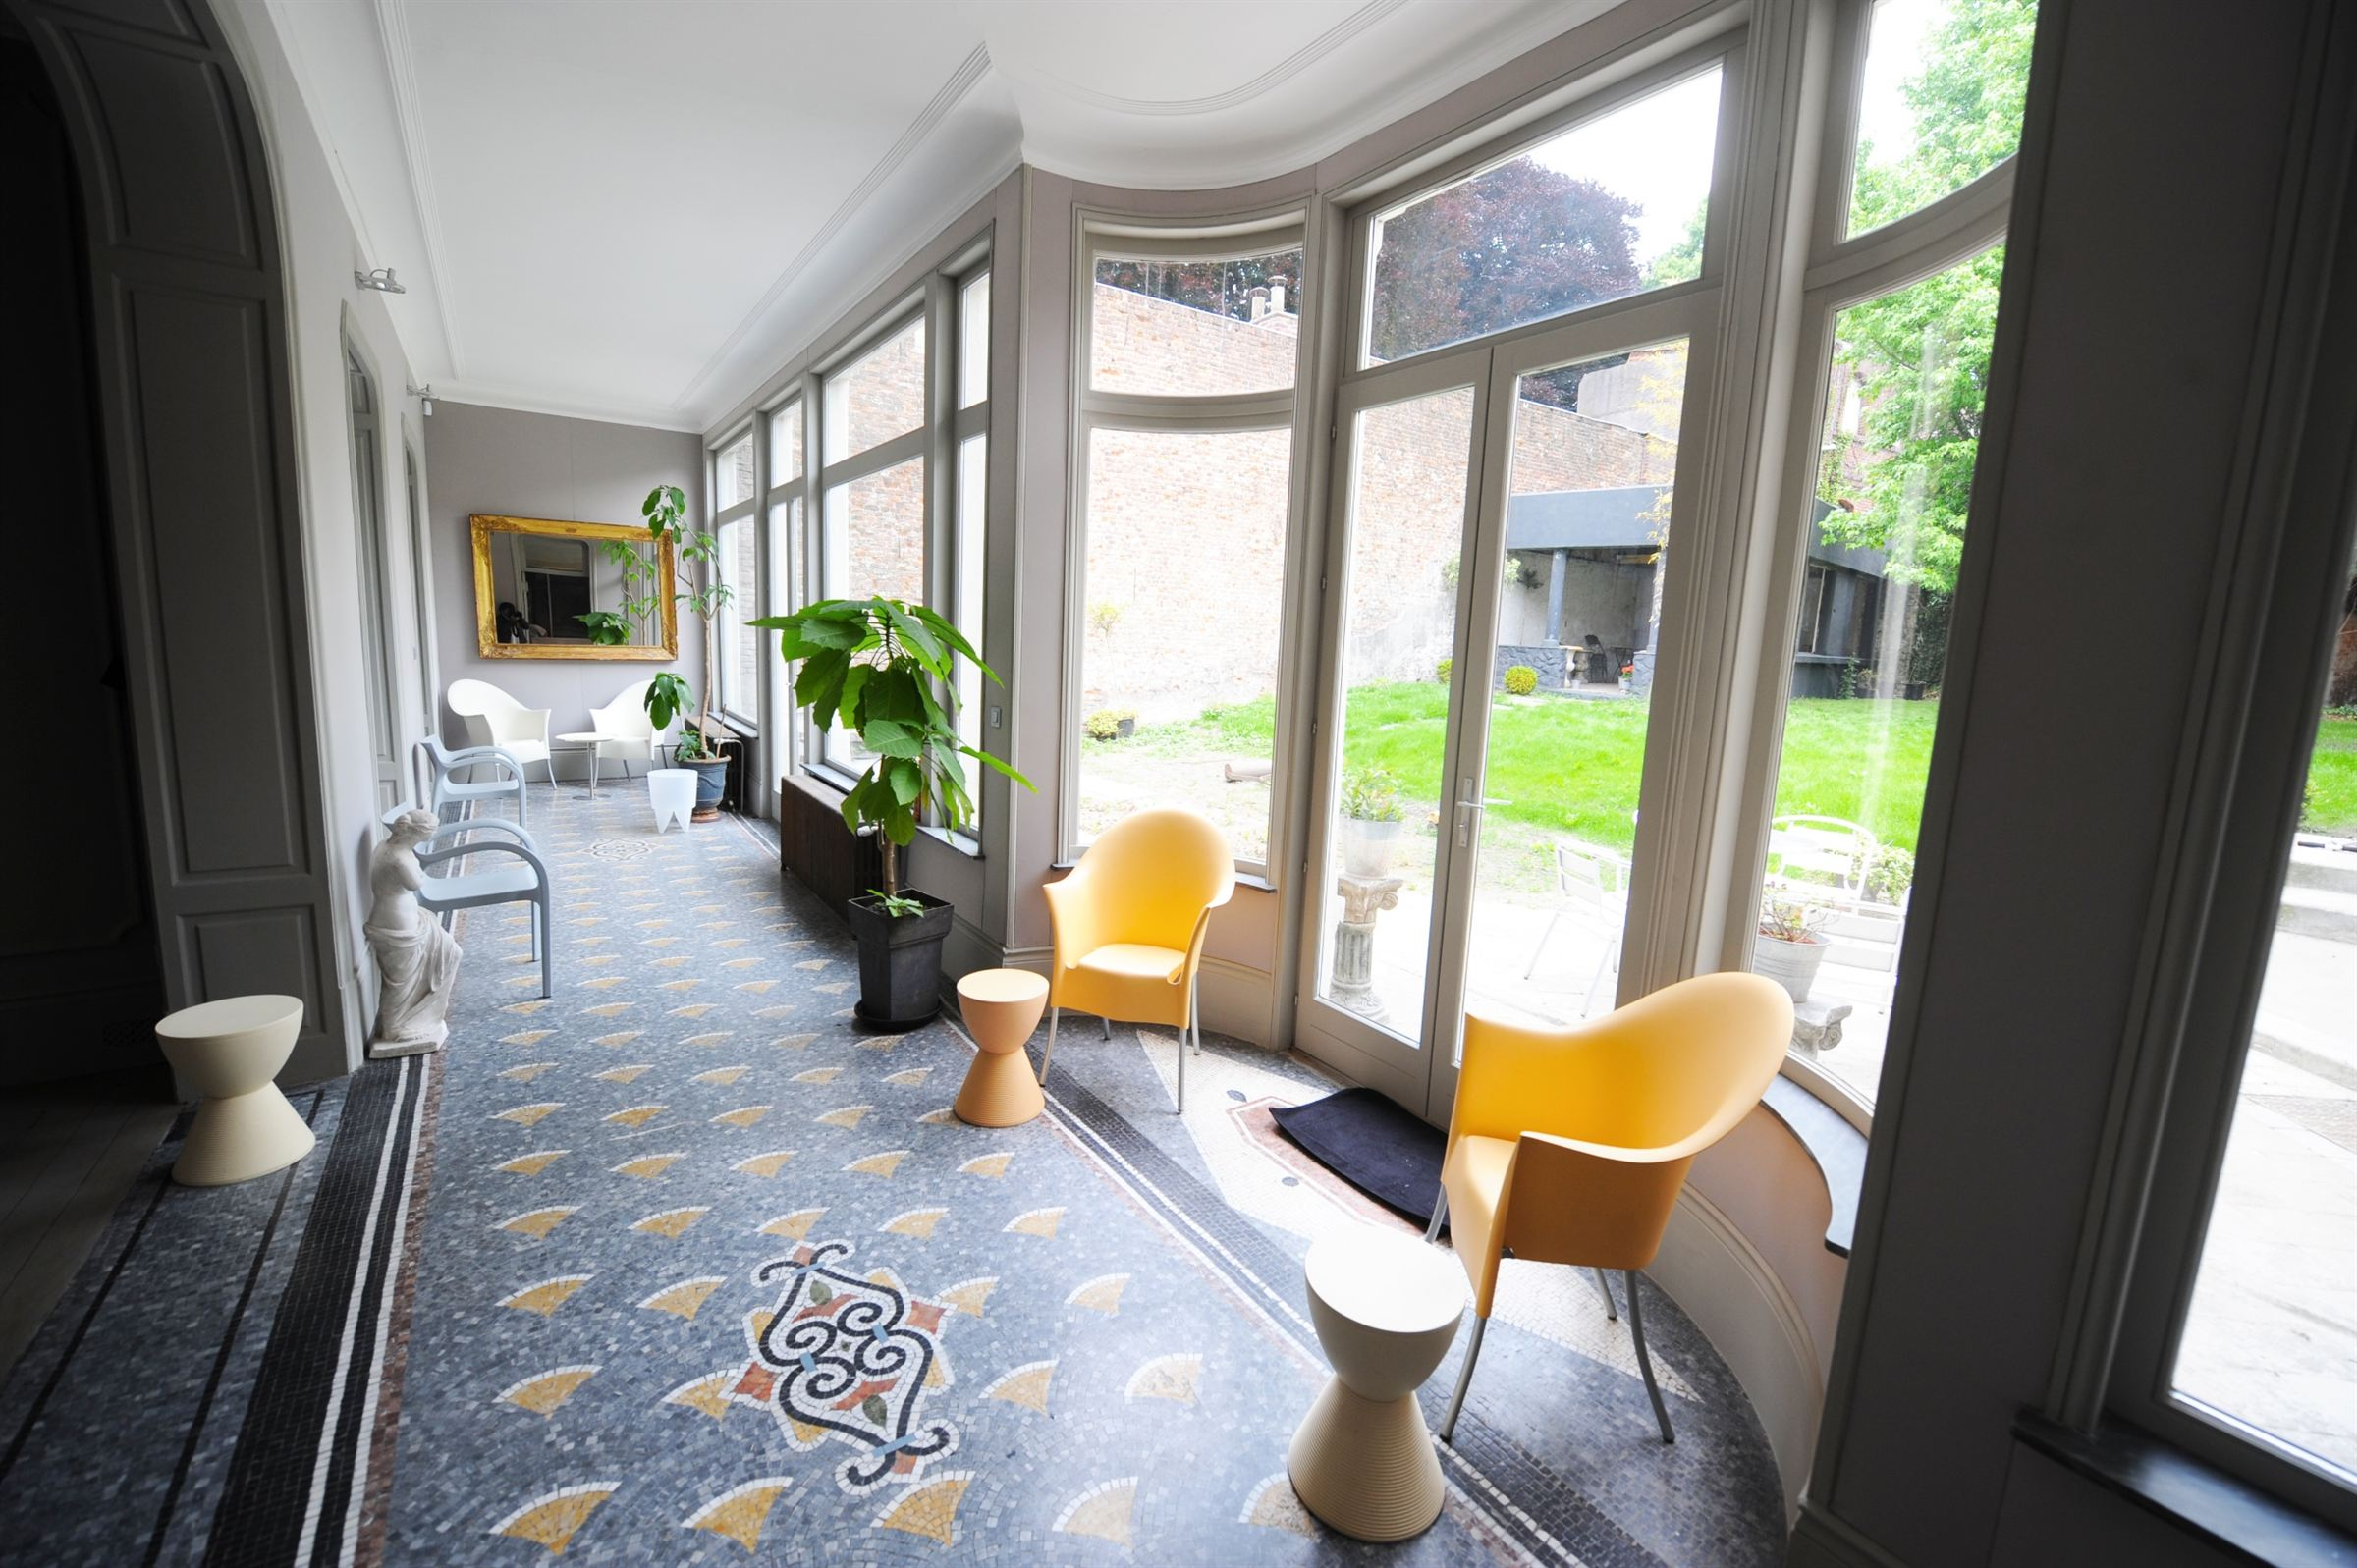 Property For Sale at VALENCIENNES, Bel hôtel particulier rénové 500 m2 hab.